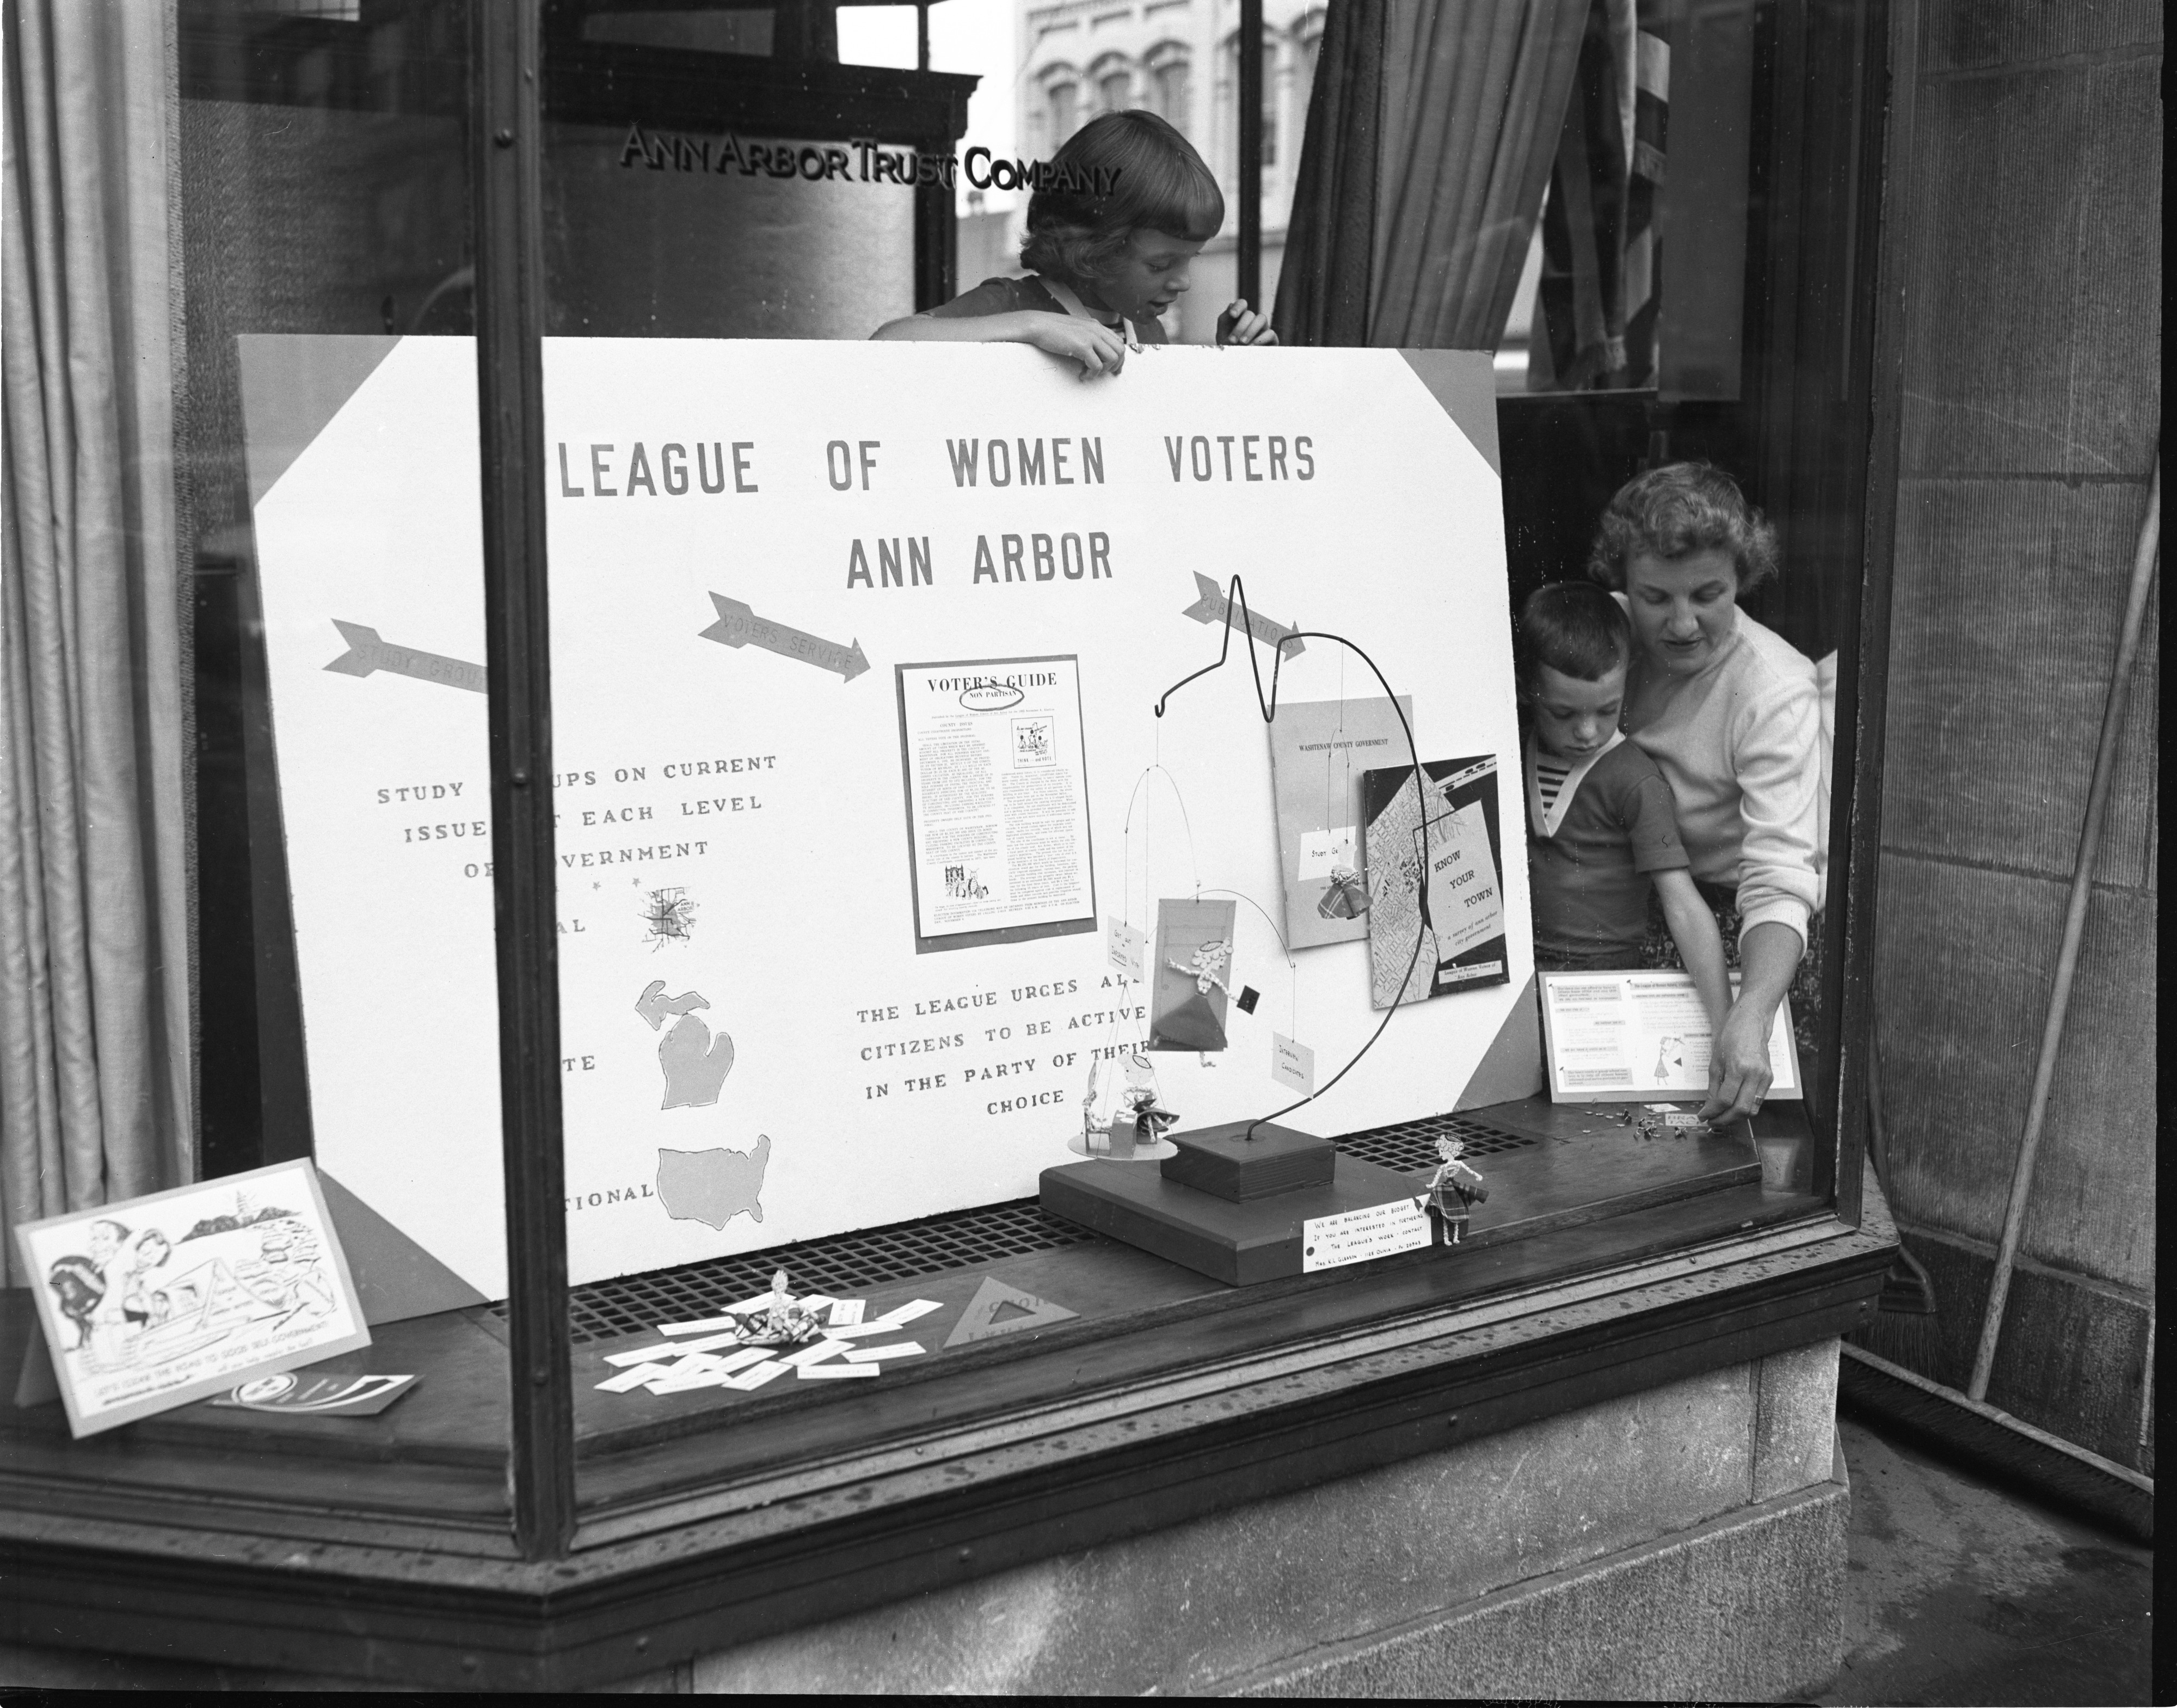 Sunny Morse & Her Children Assemble A League Of Women Voters Window Display In The Ann Arbor Trust Building, September 1953 image